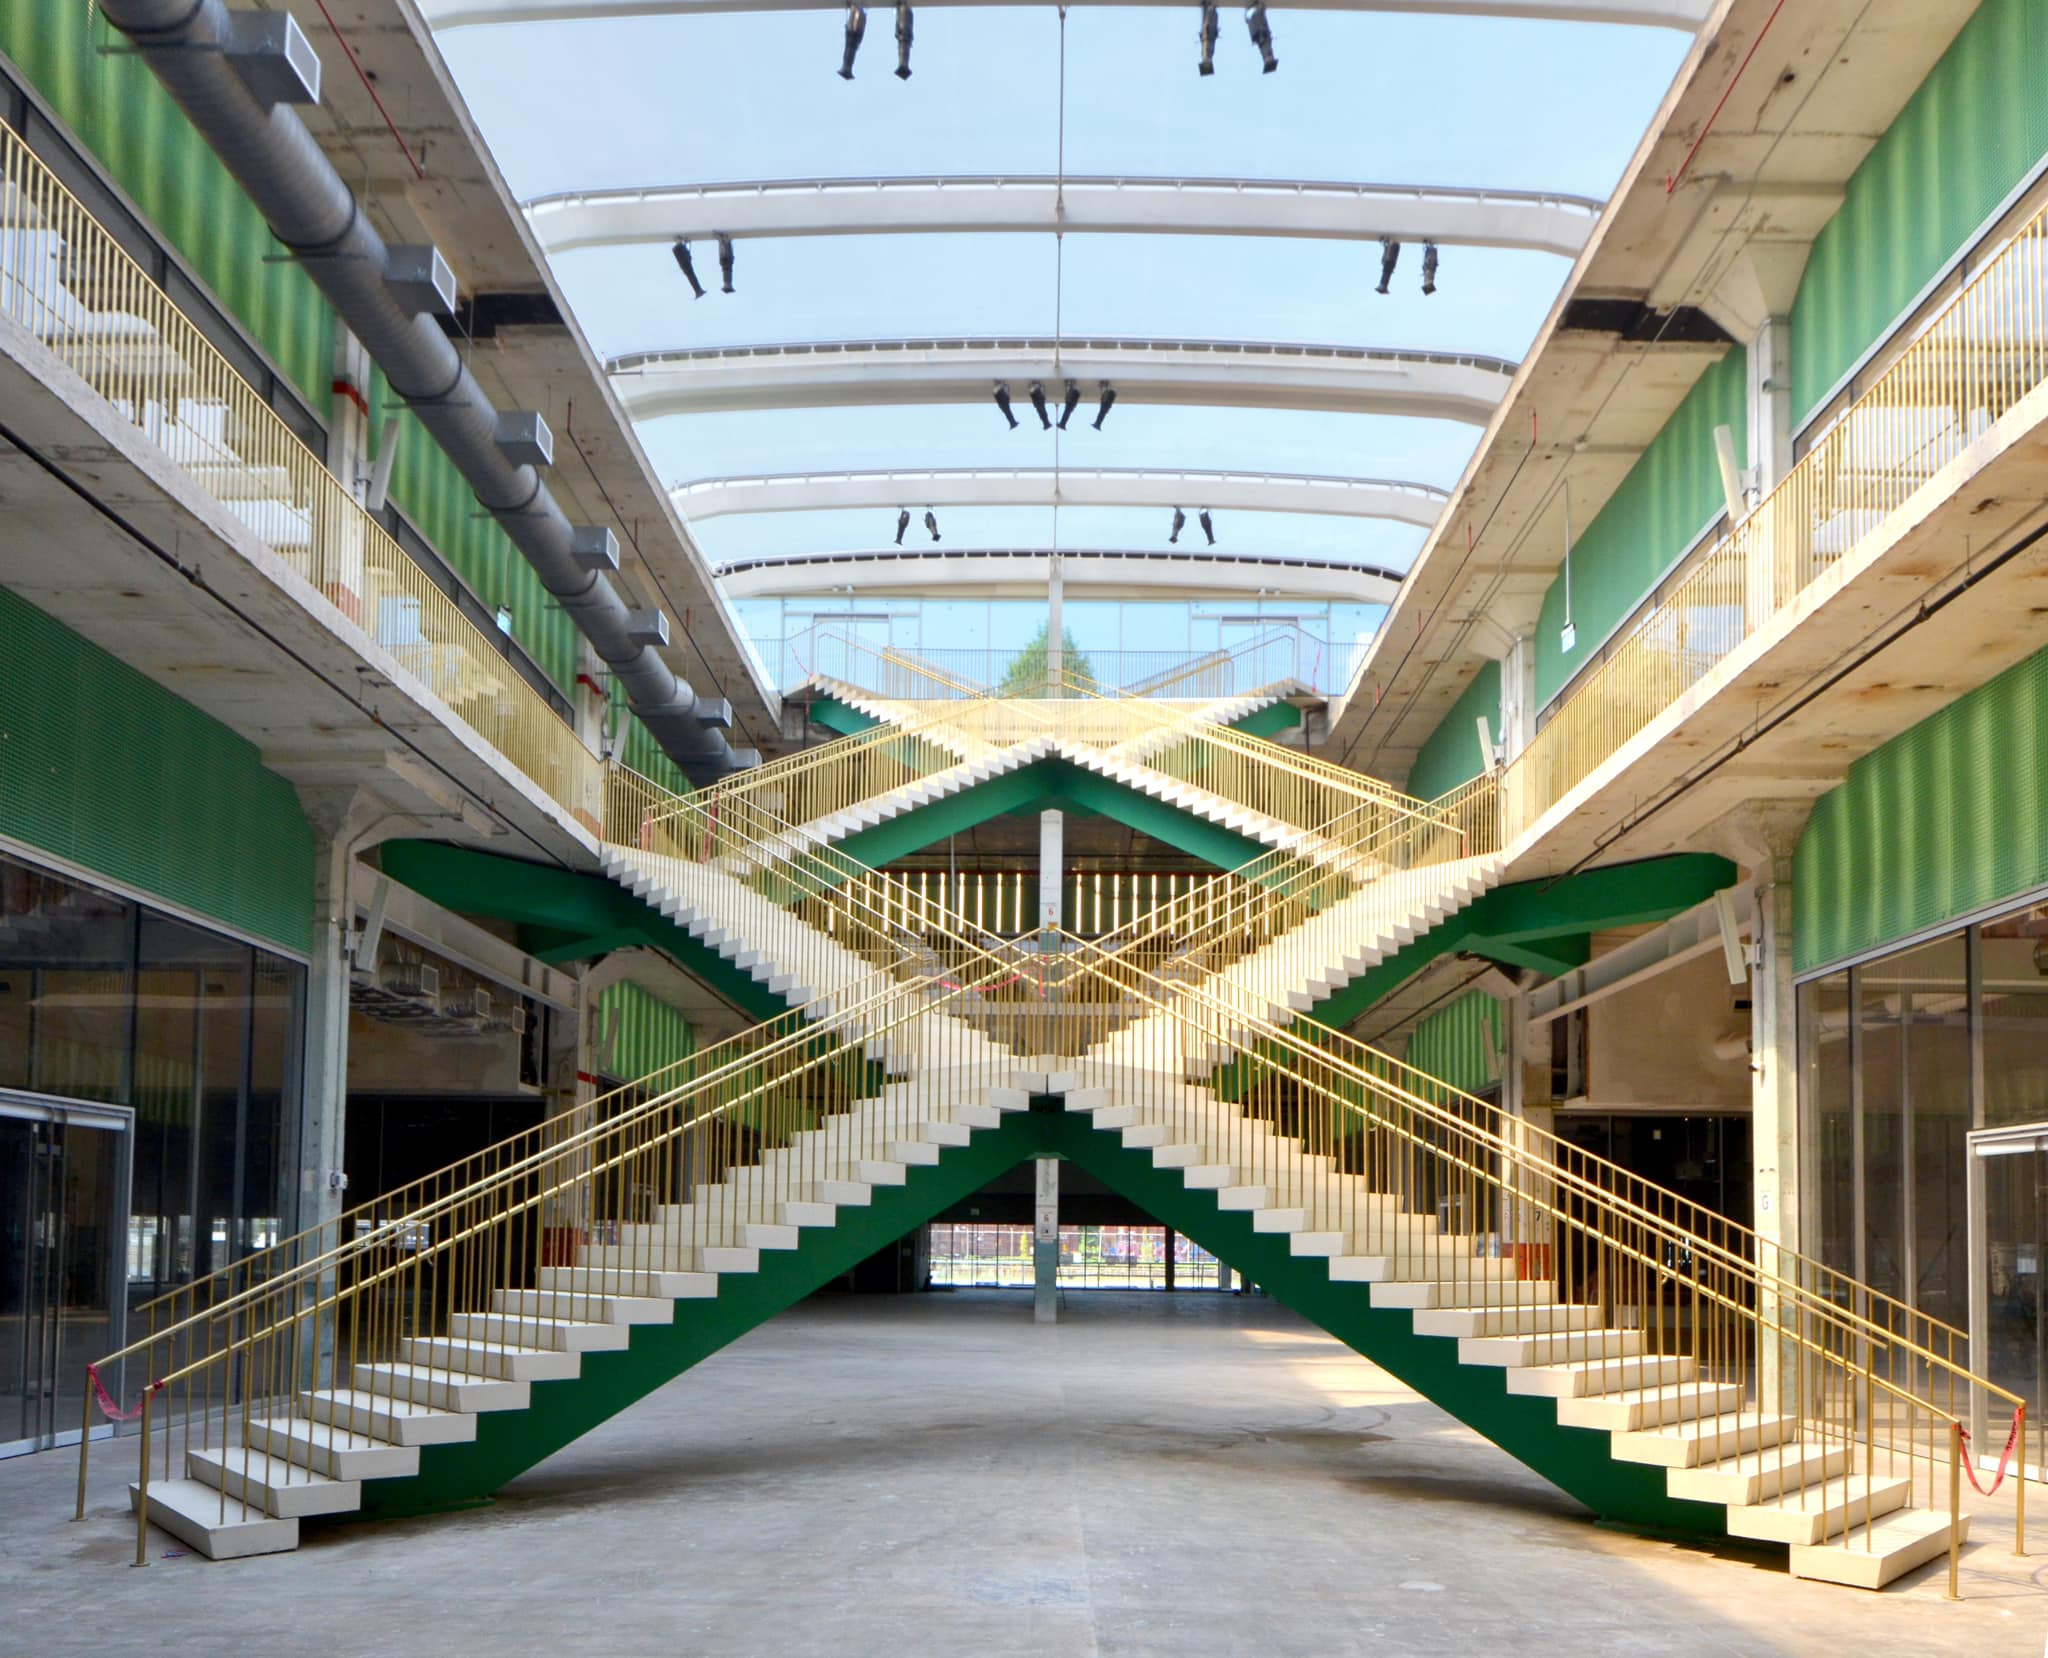 the interior of a building with in interesting, X-shaped stairwell